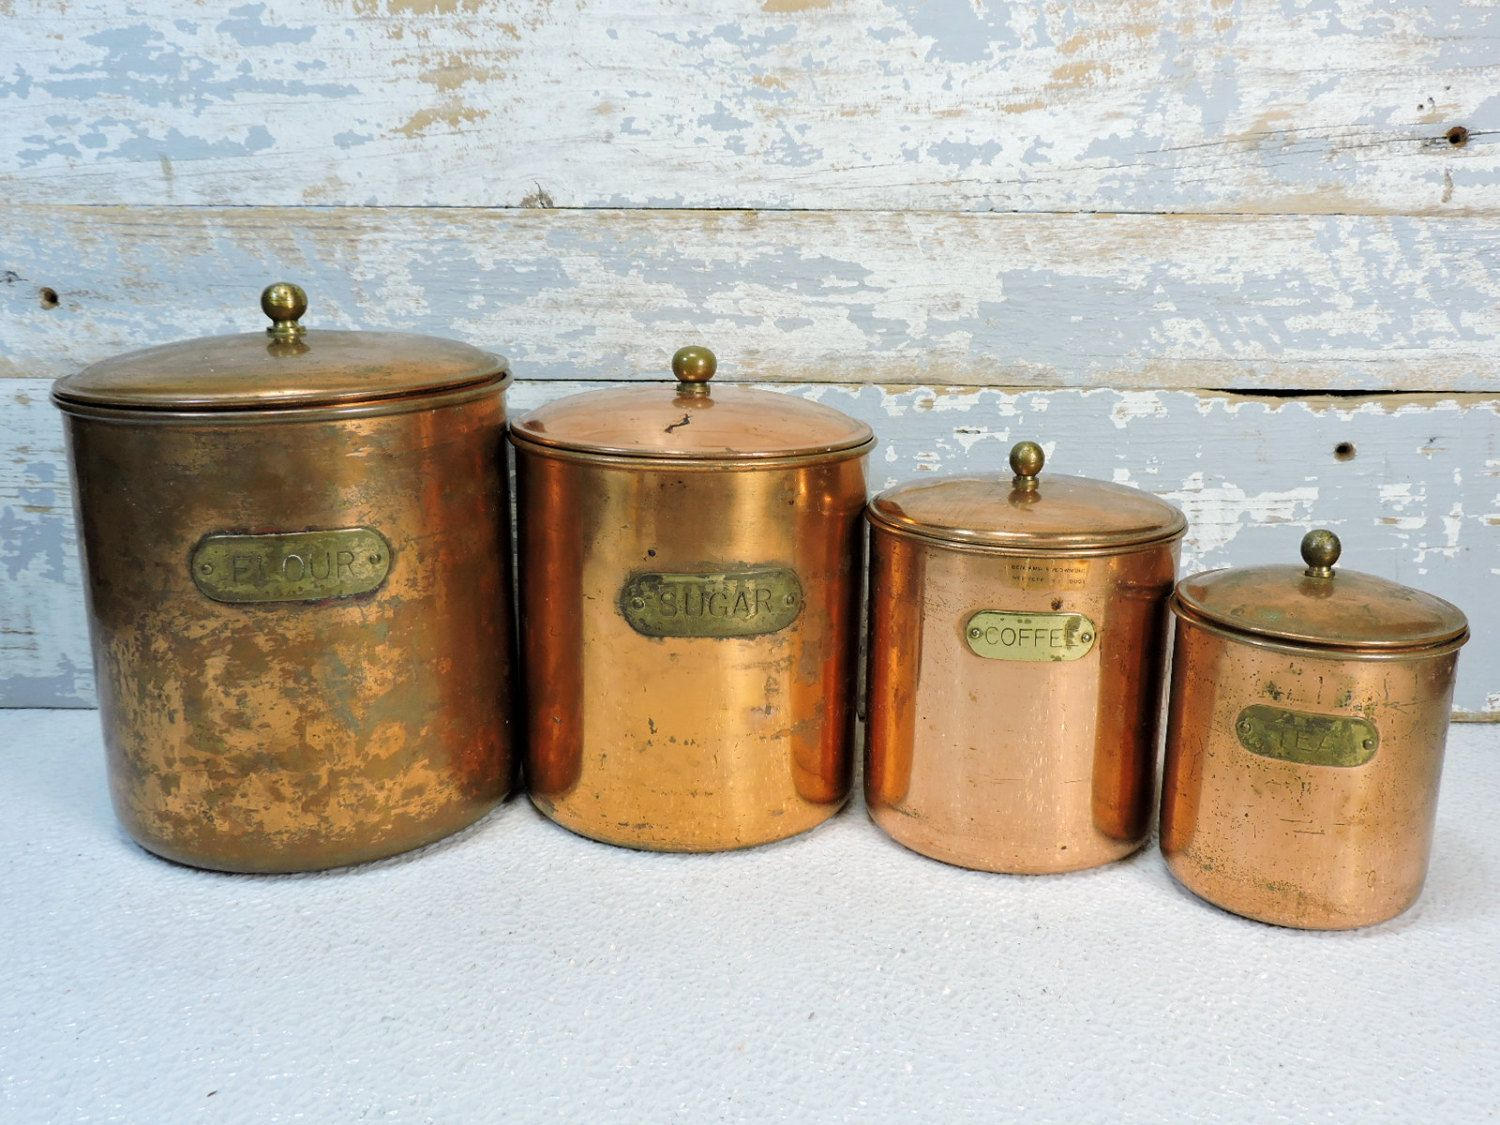 Exceptional Vintage Copper Canisters Kitchen Containers Coffee, Flour, Sugar, Tea  French Country Decor Cottage